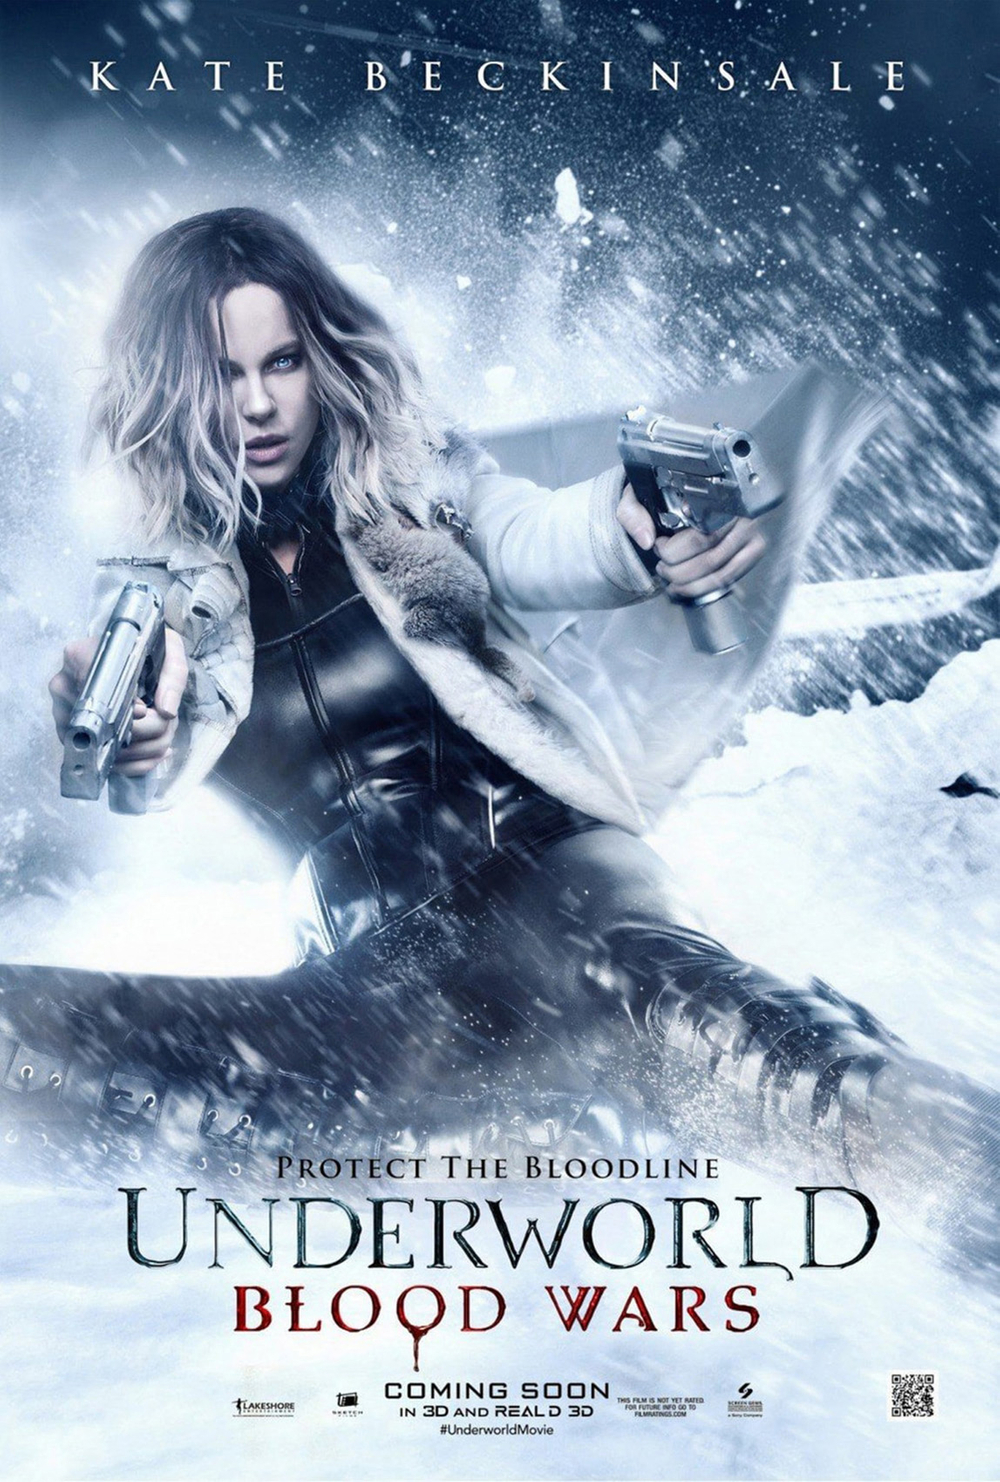 KateBeckinsale_Underworld_004.jpg